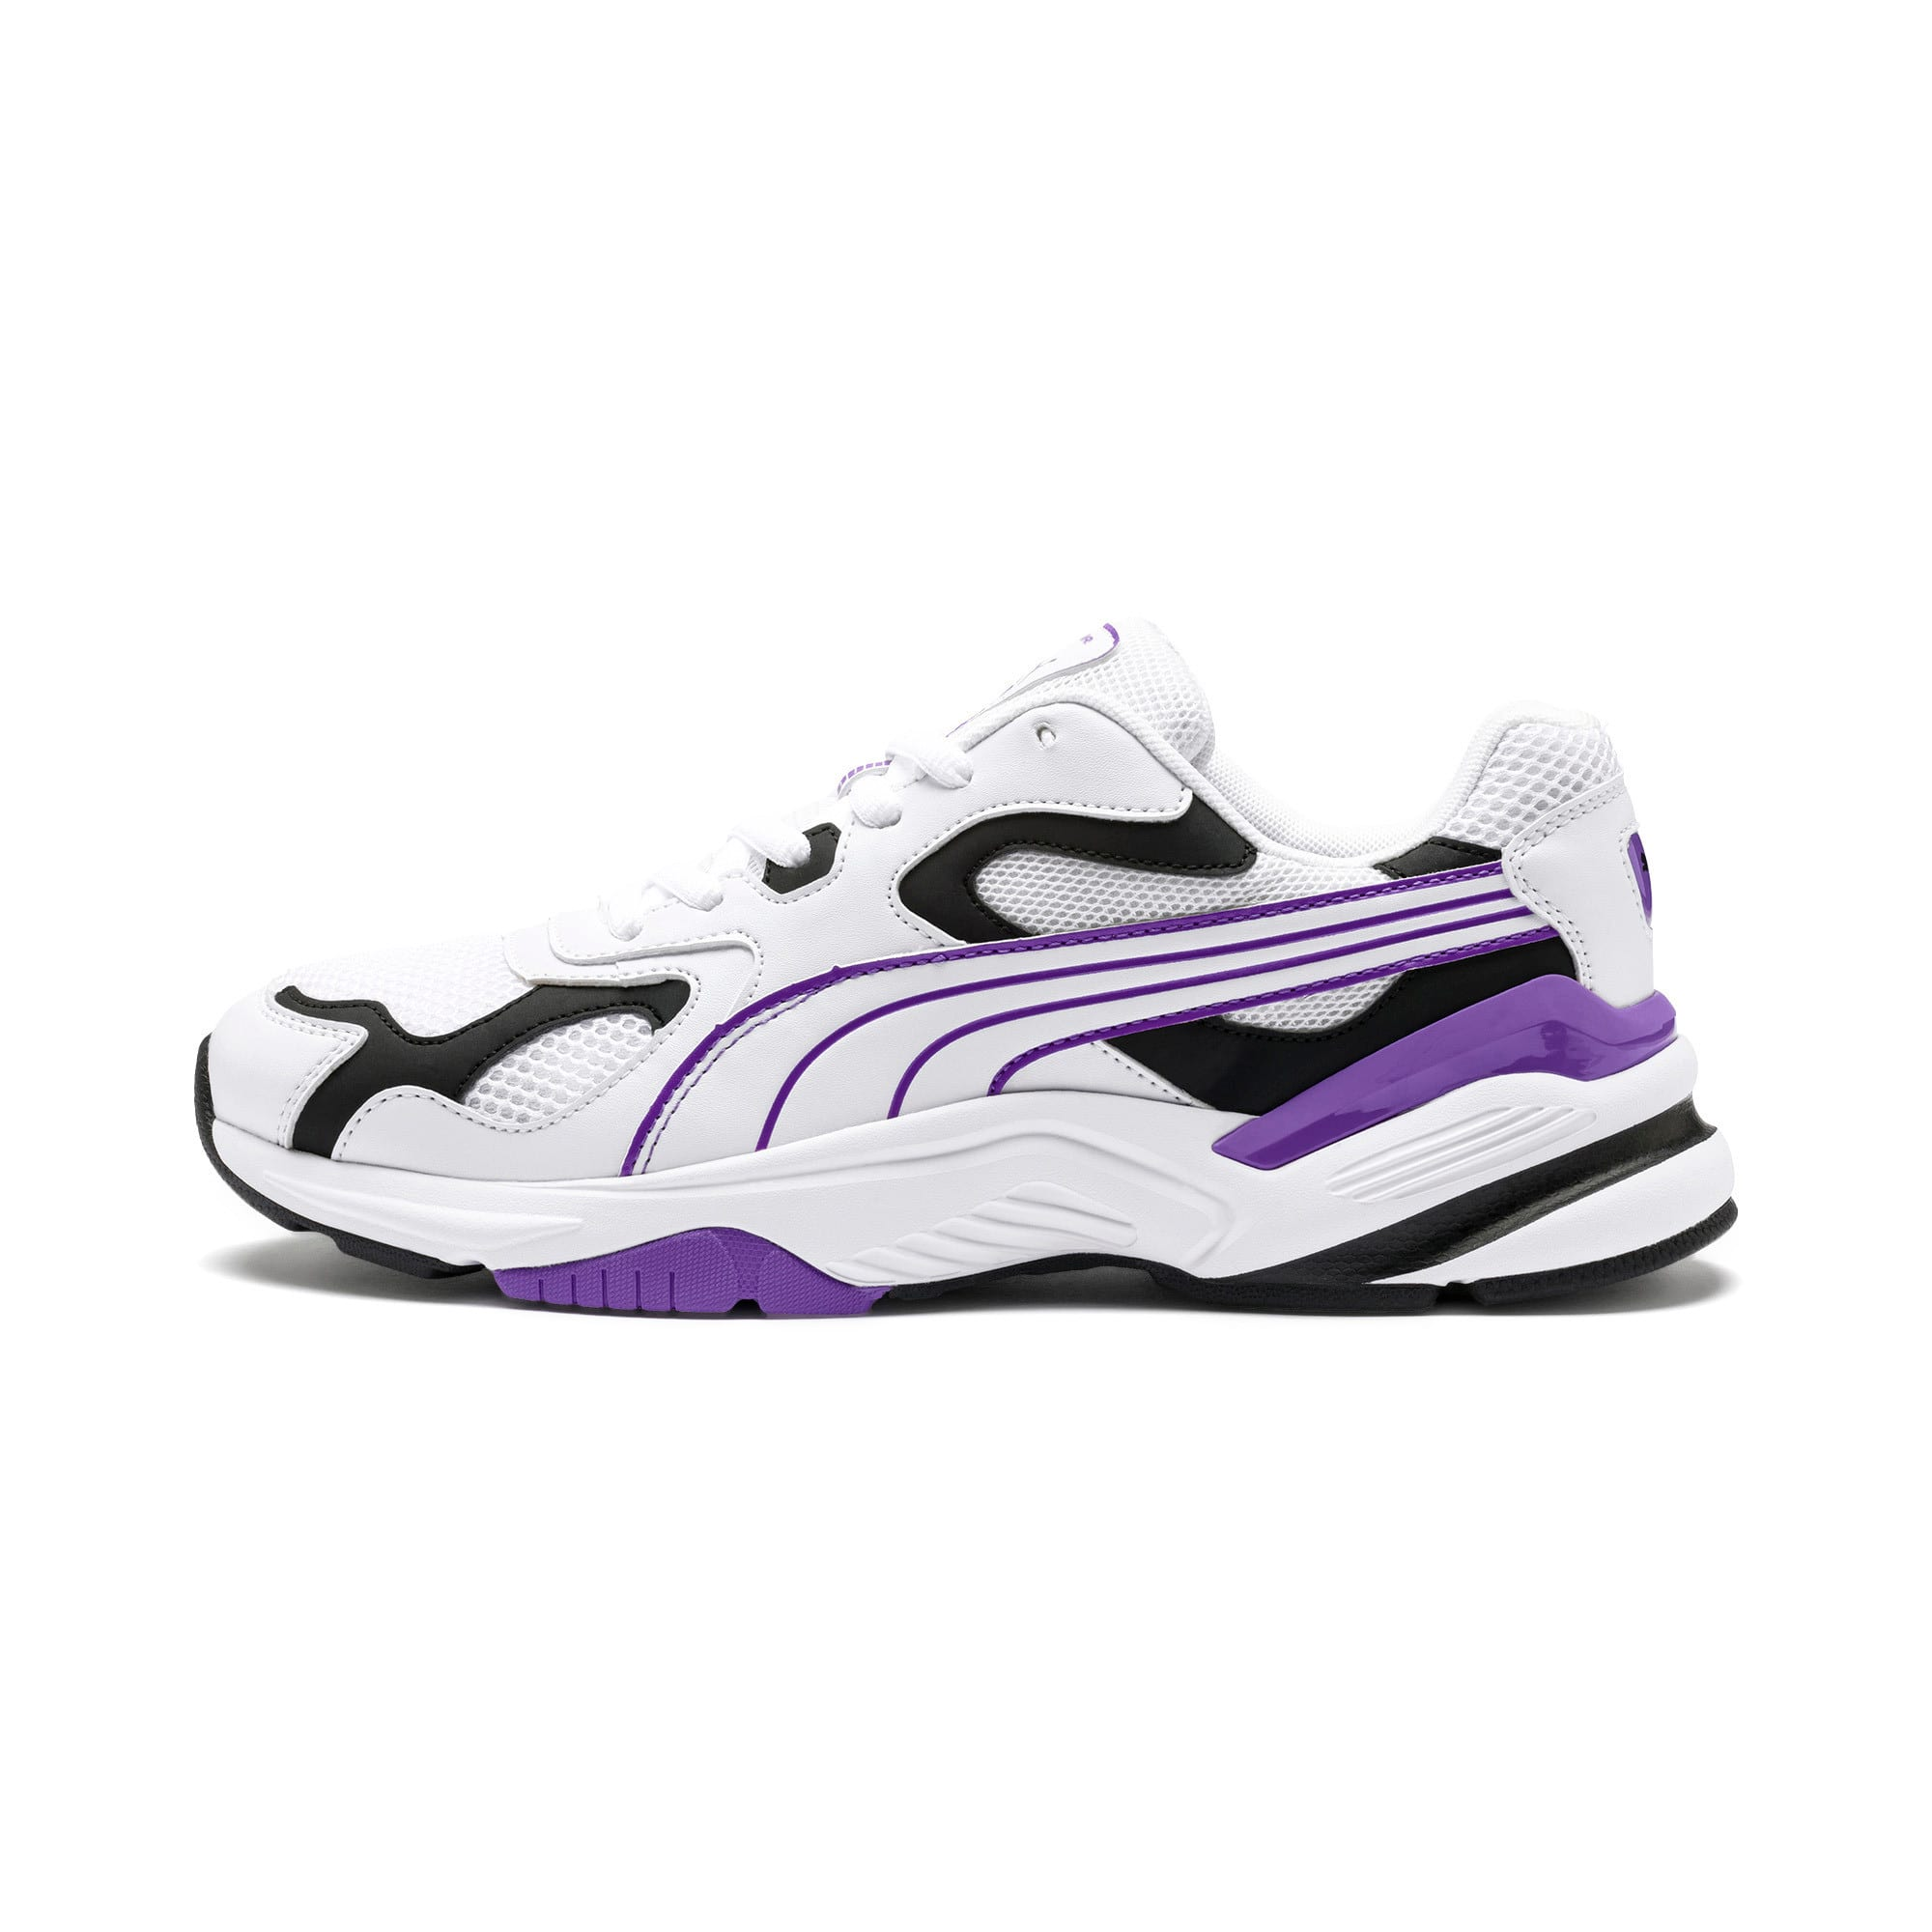 Thumbnail 1 of Axis SUPR Trainers, White-Black-Purple Glimmer, medium-IND